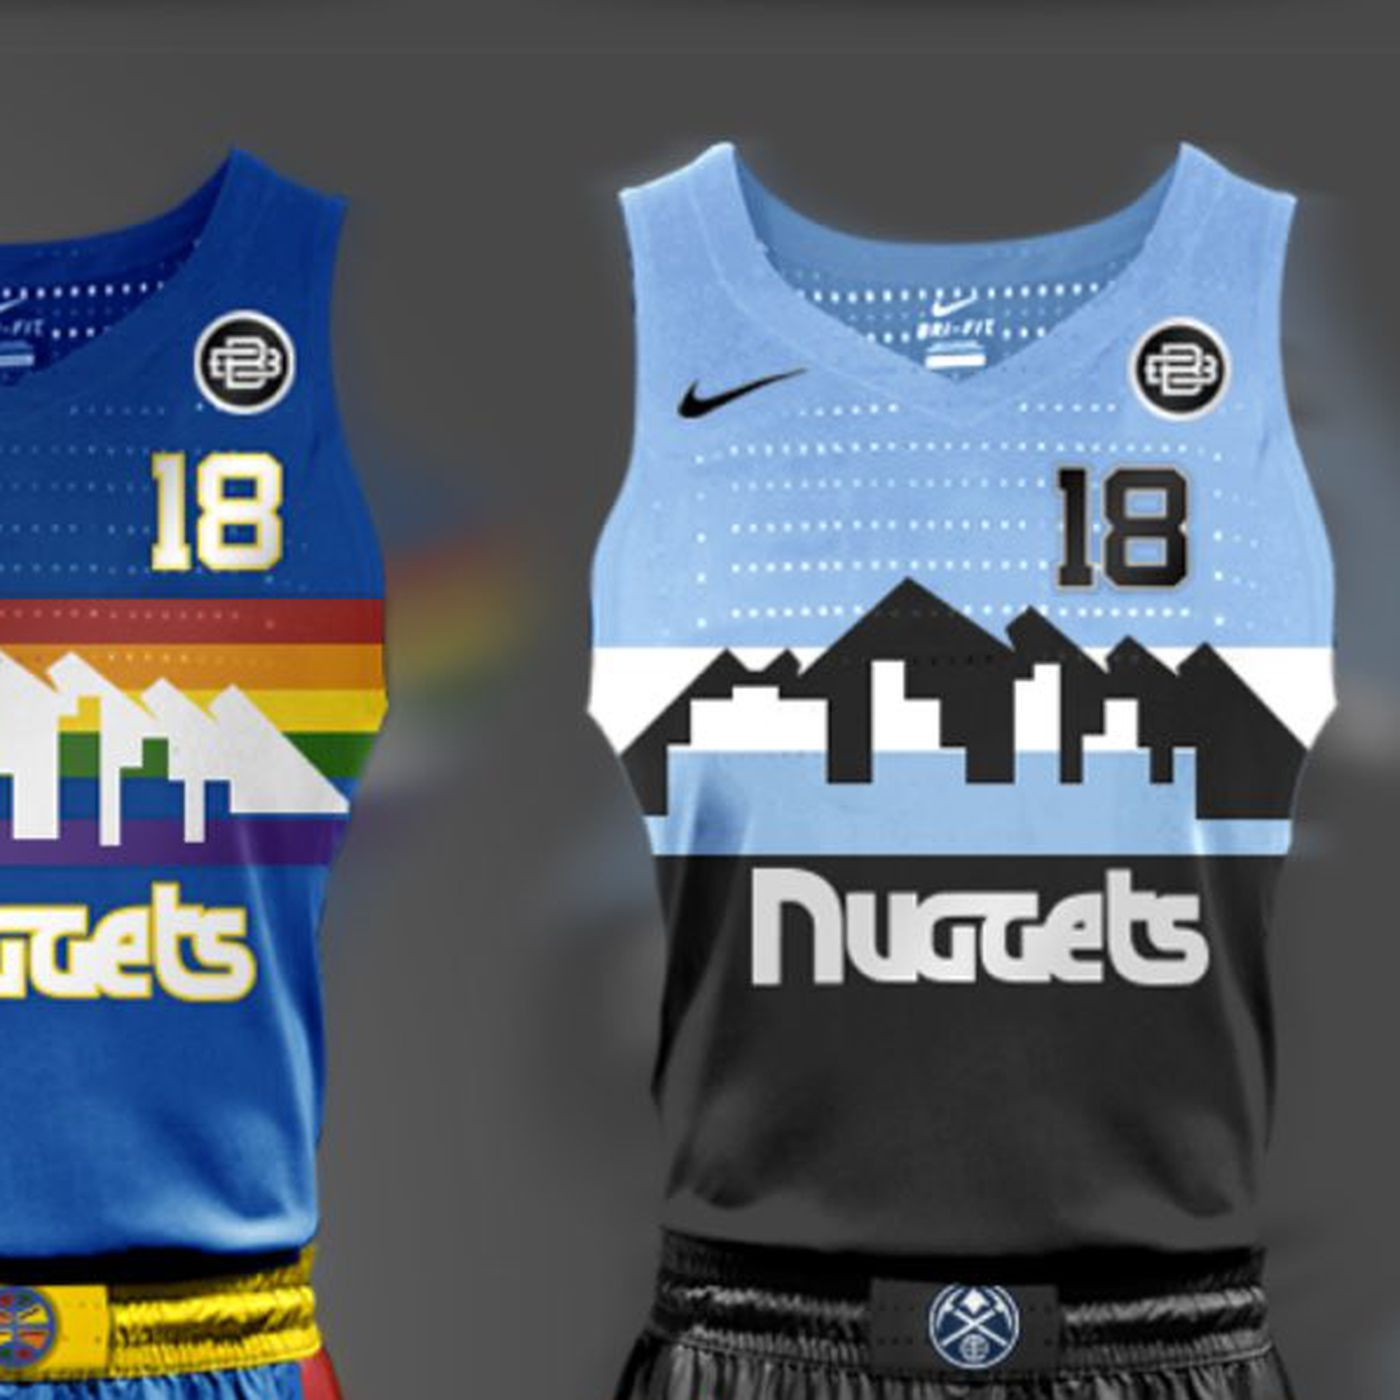 online store 28aa2 c64c2 These fan-made Denver Nuggets jersey designs are the best ...